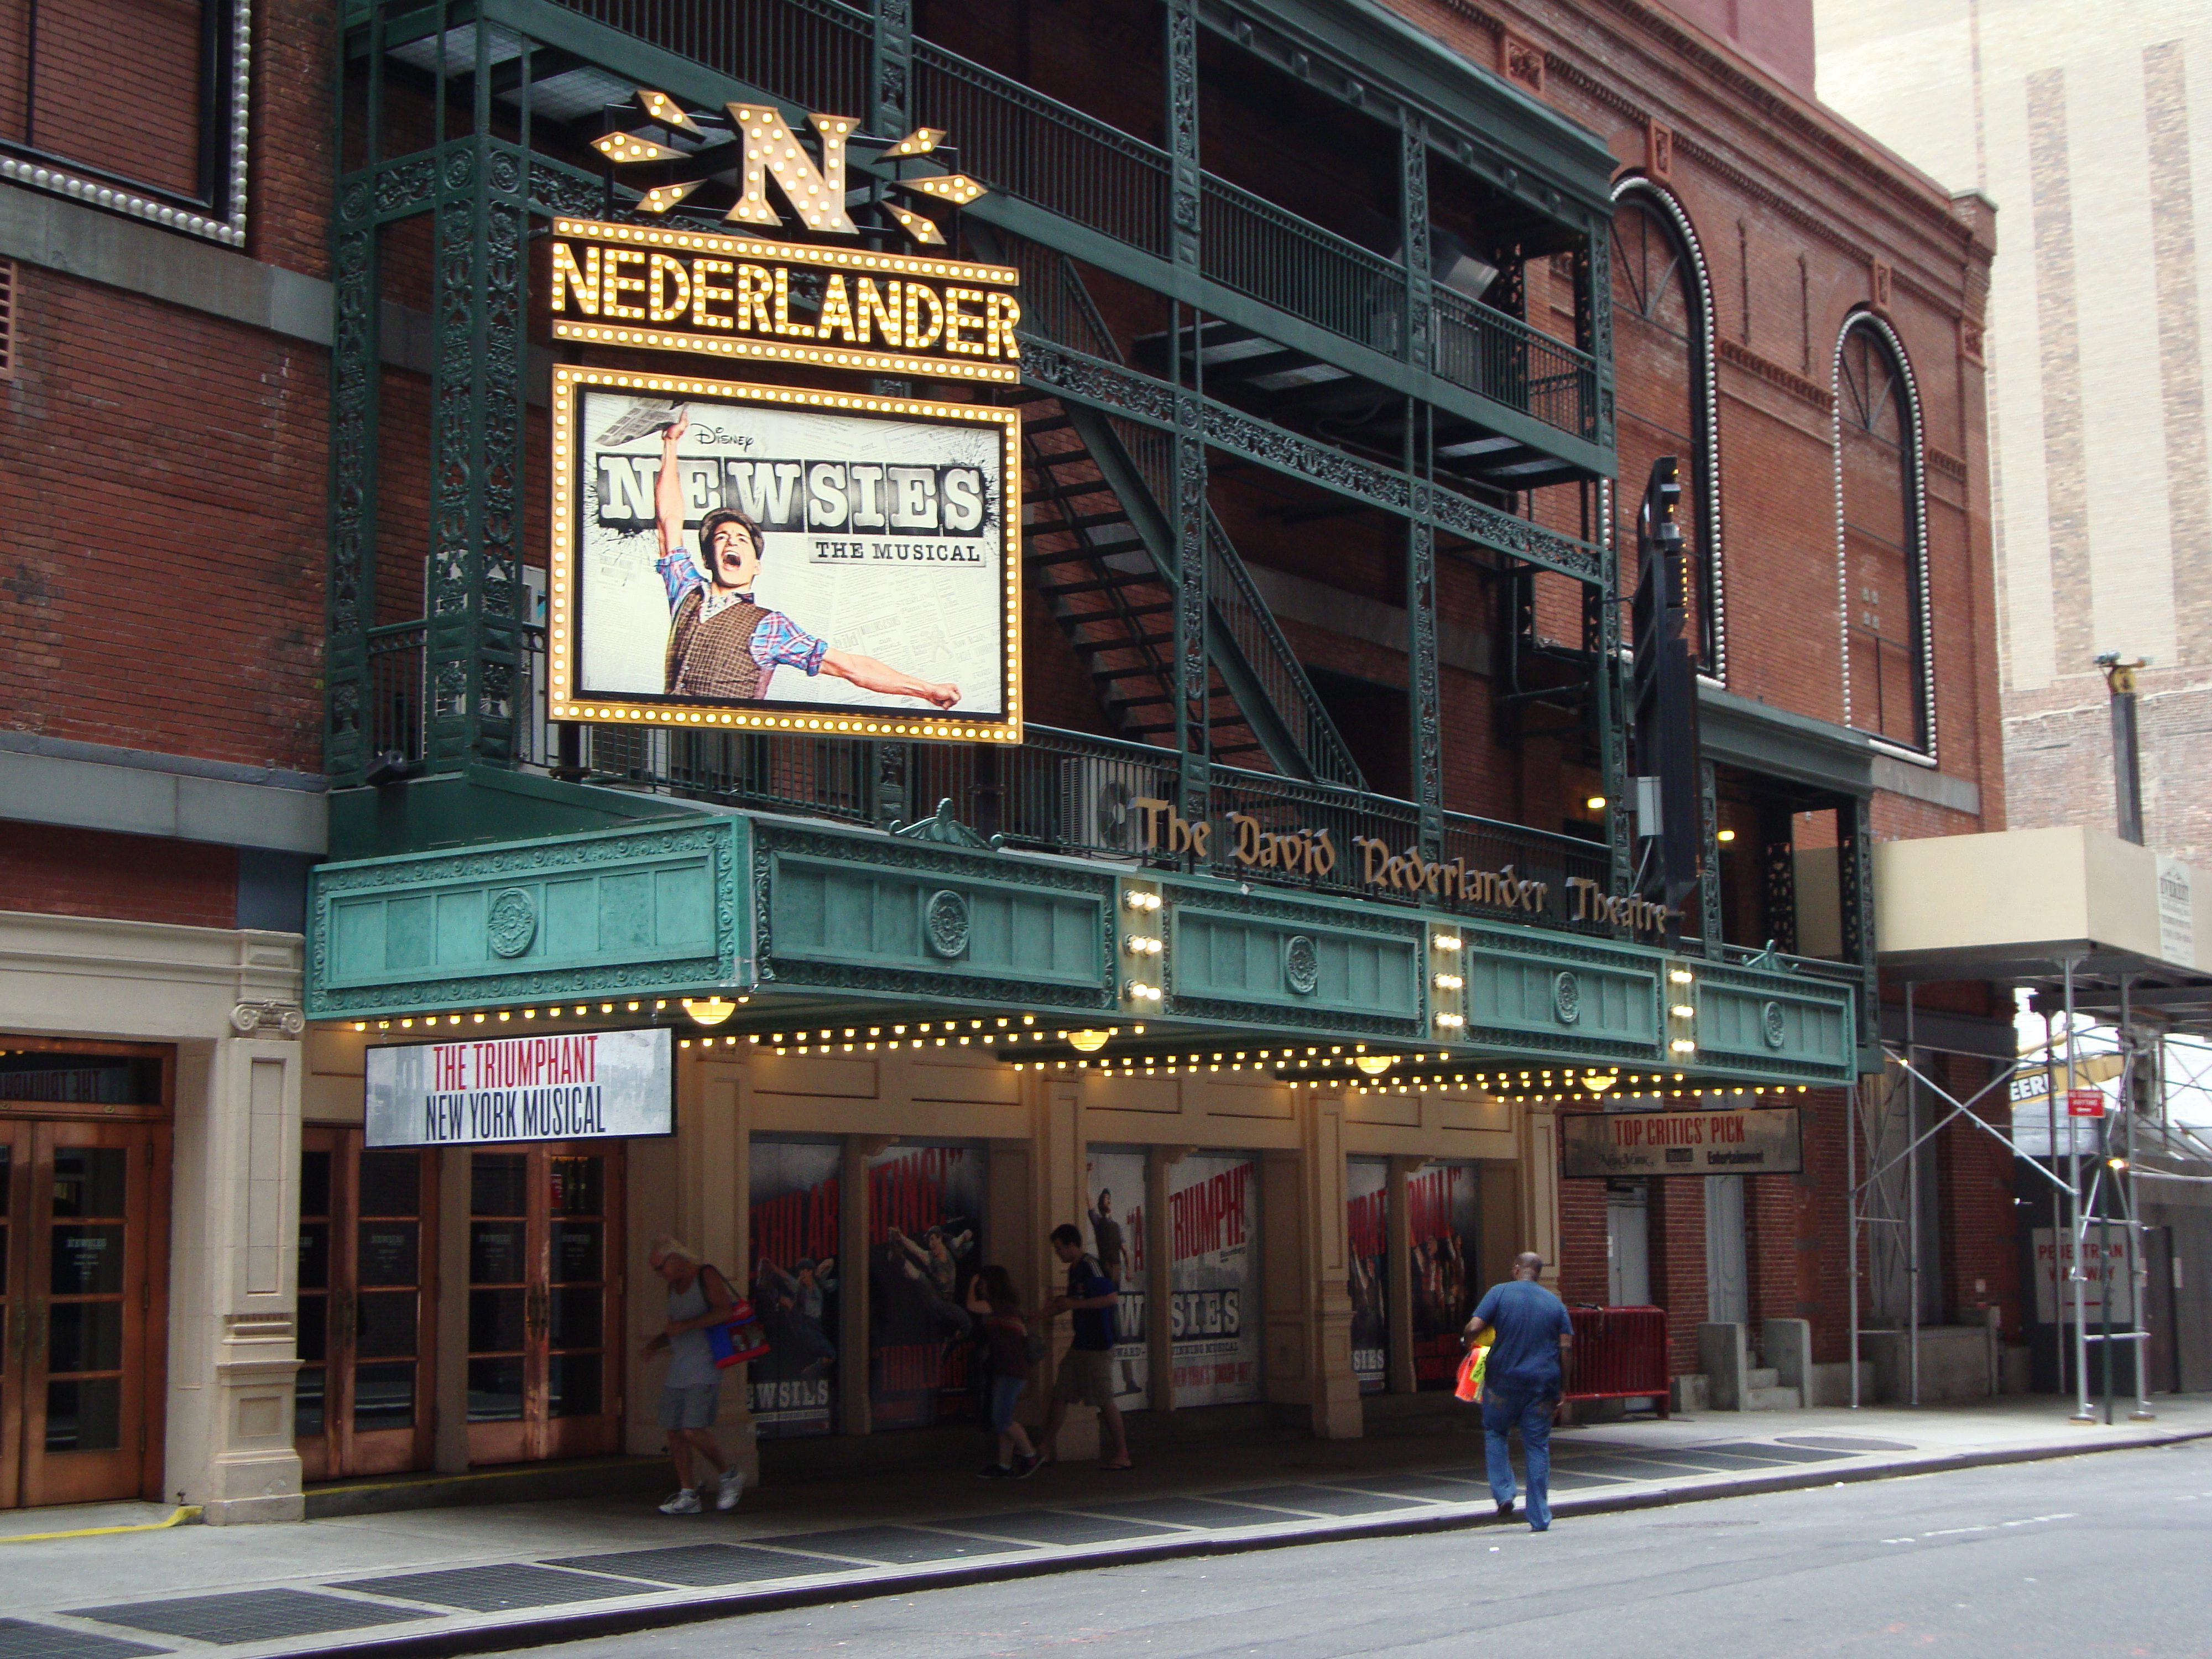 Nederlander Theatre exterior (image from Ludus NYC)